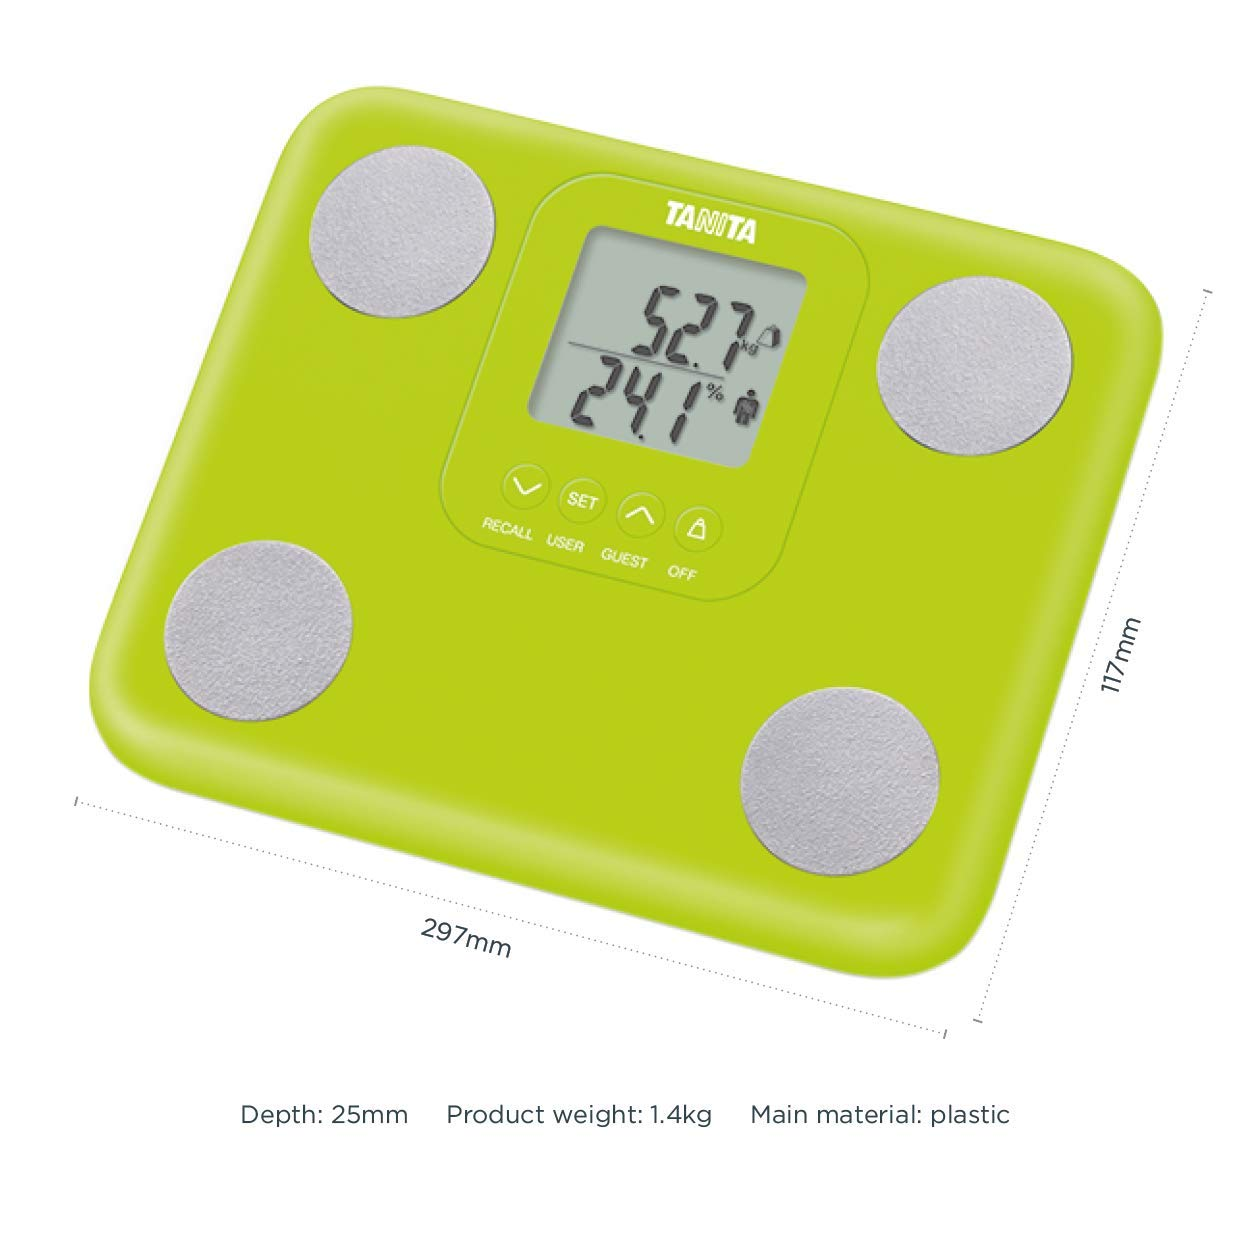 Fabulous Tanita Bc730G Innerscan Body Composition Monitor Green Download Free Architecture Designs Scobabritishbridgeorg